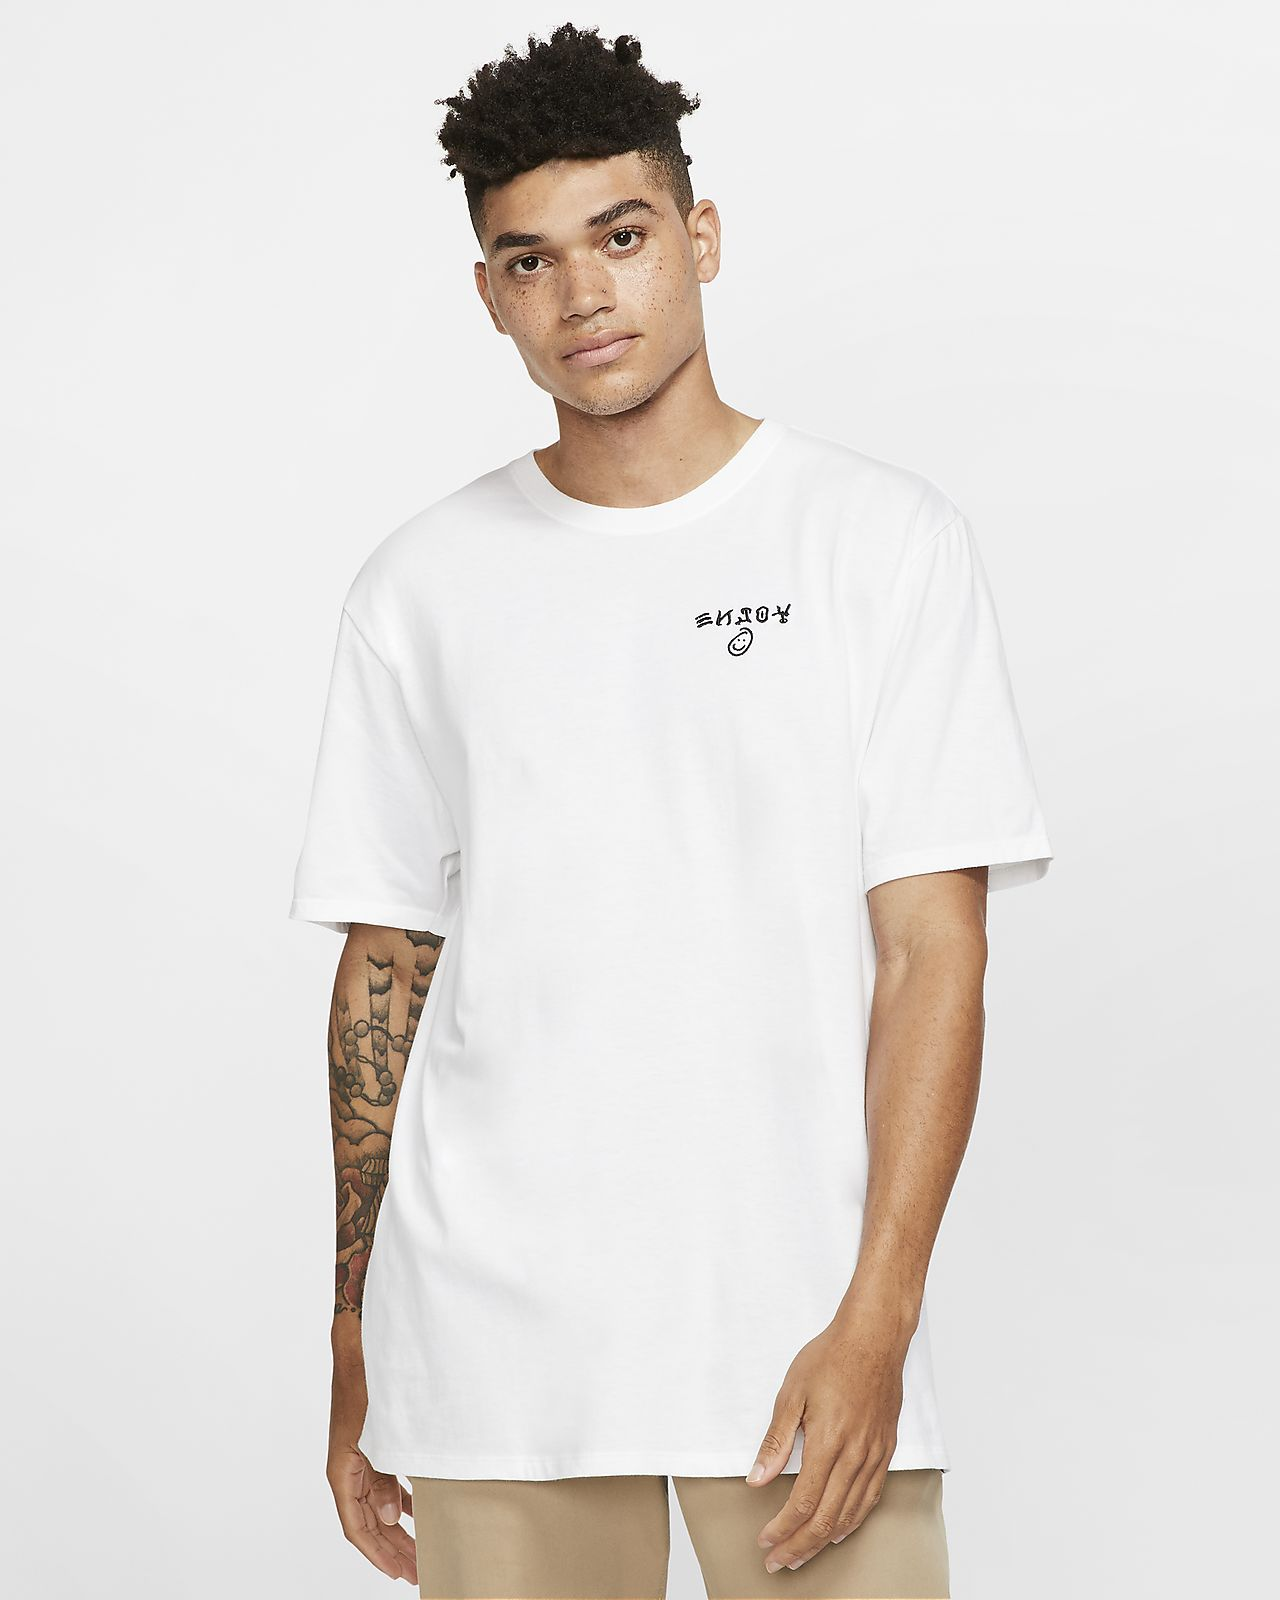 Tee-shirt Hurley Premium Surf And Enjoy pour Homme